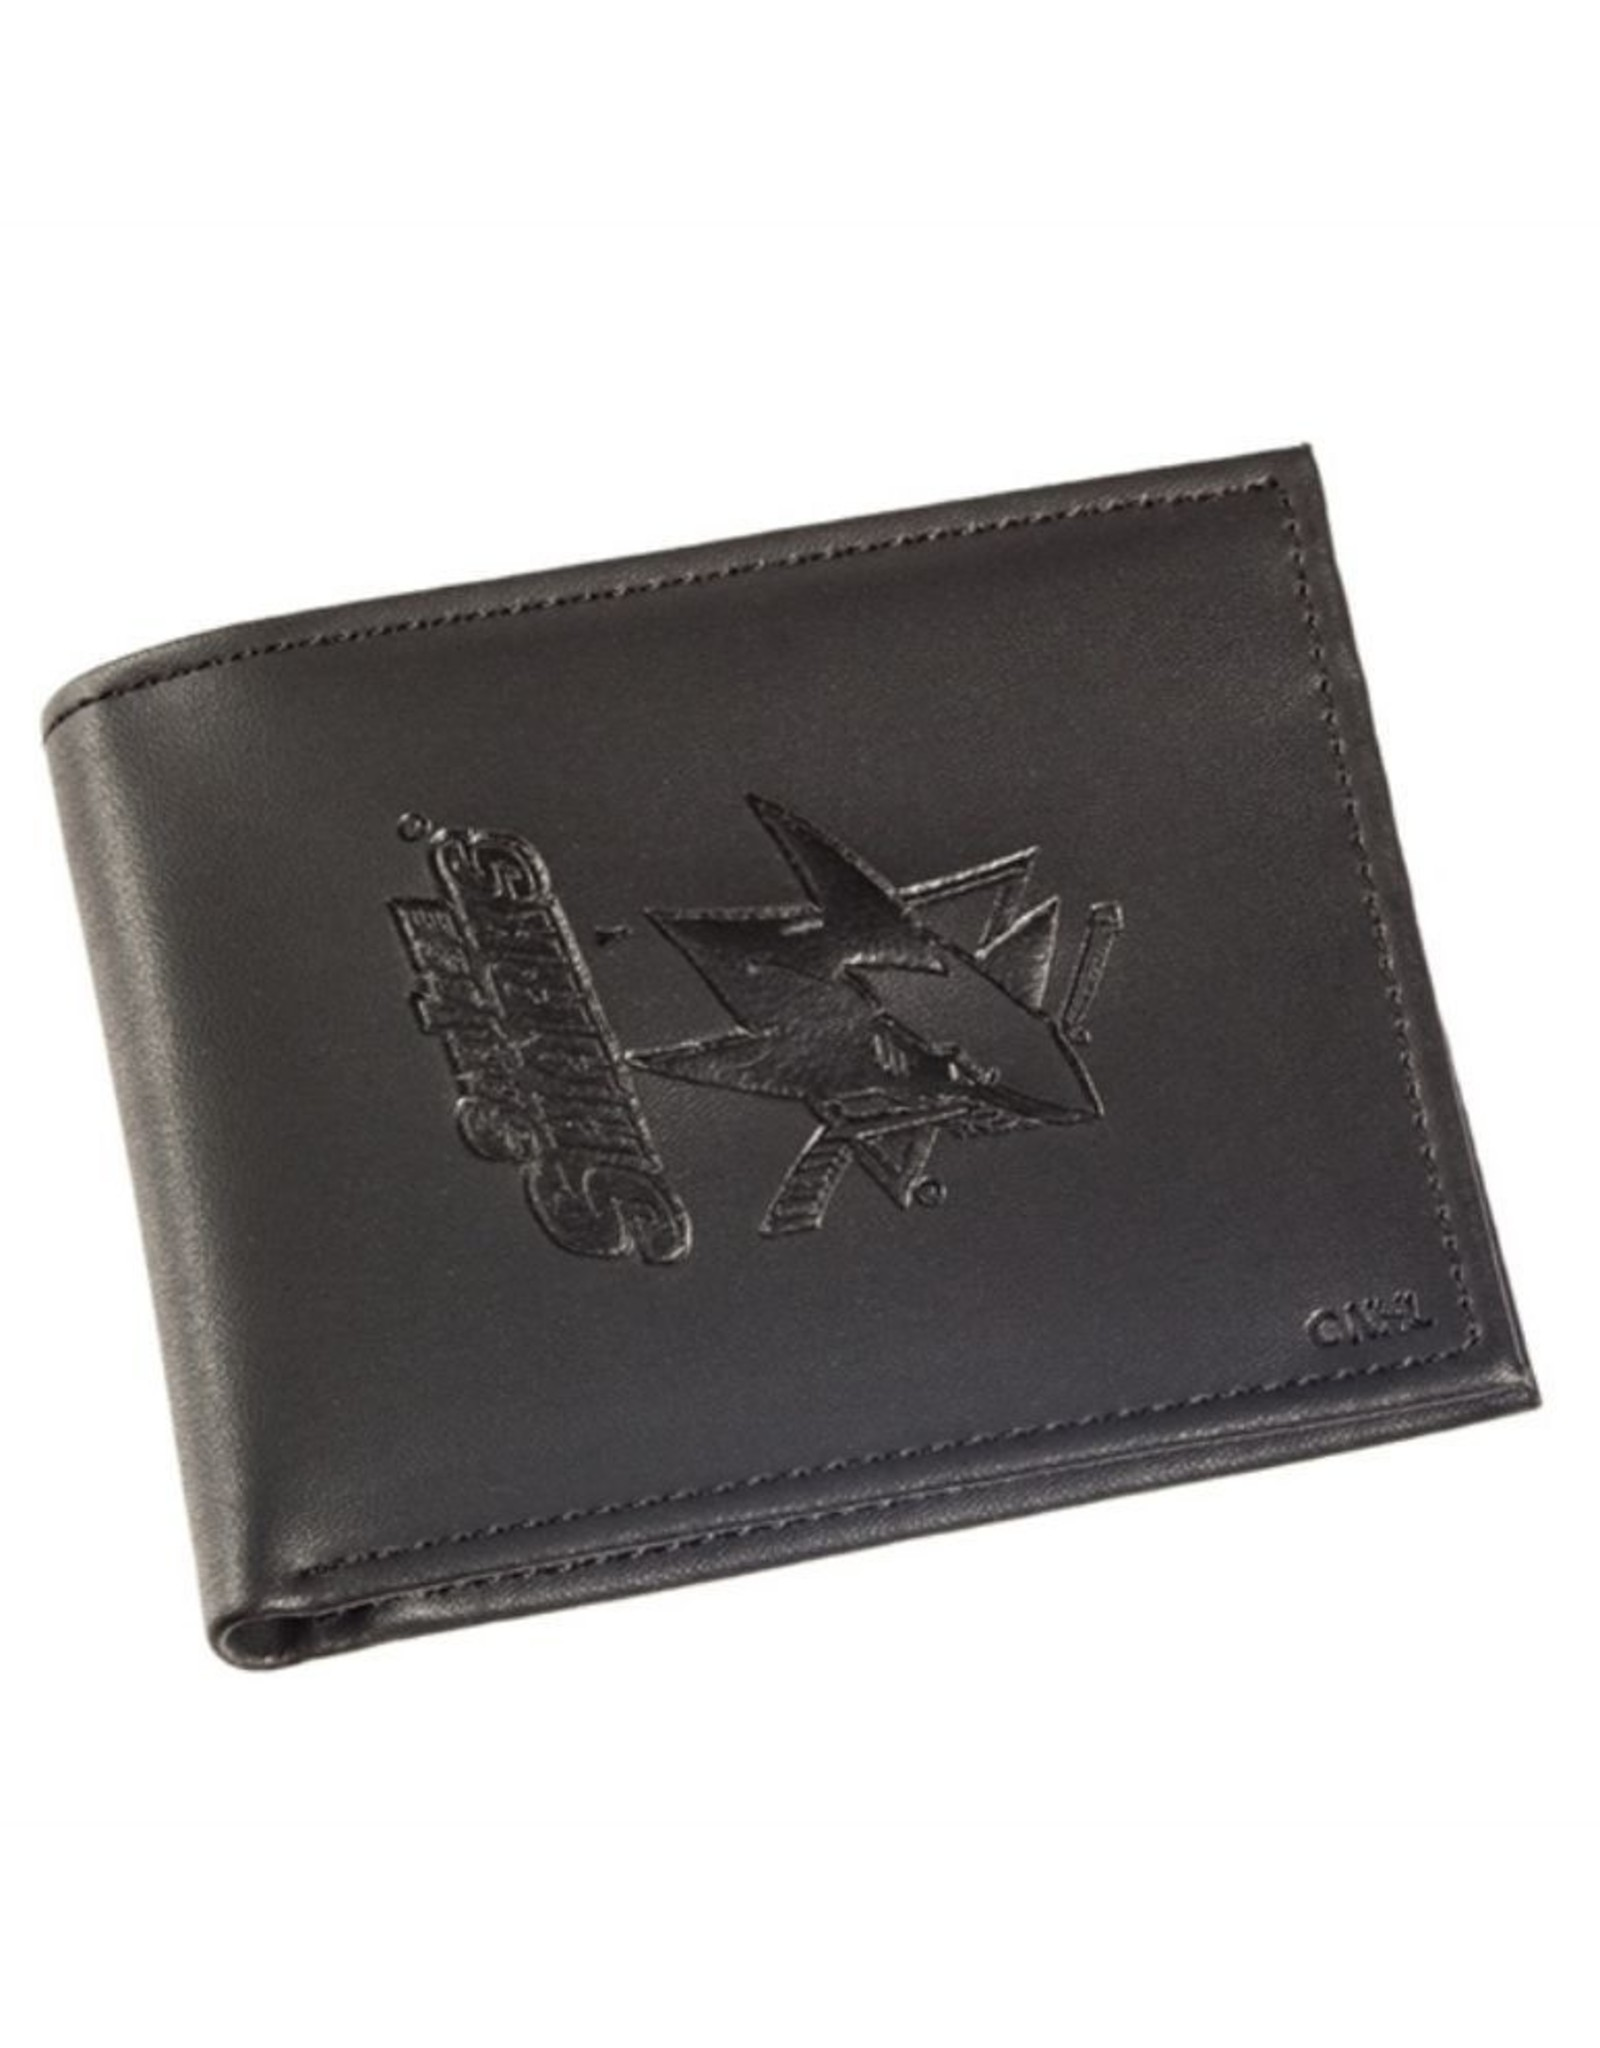 Team Sports Ameica NHL Bi-Fold Leather Embossed Wallet Sharks